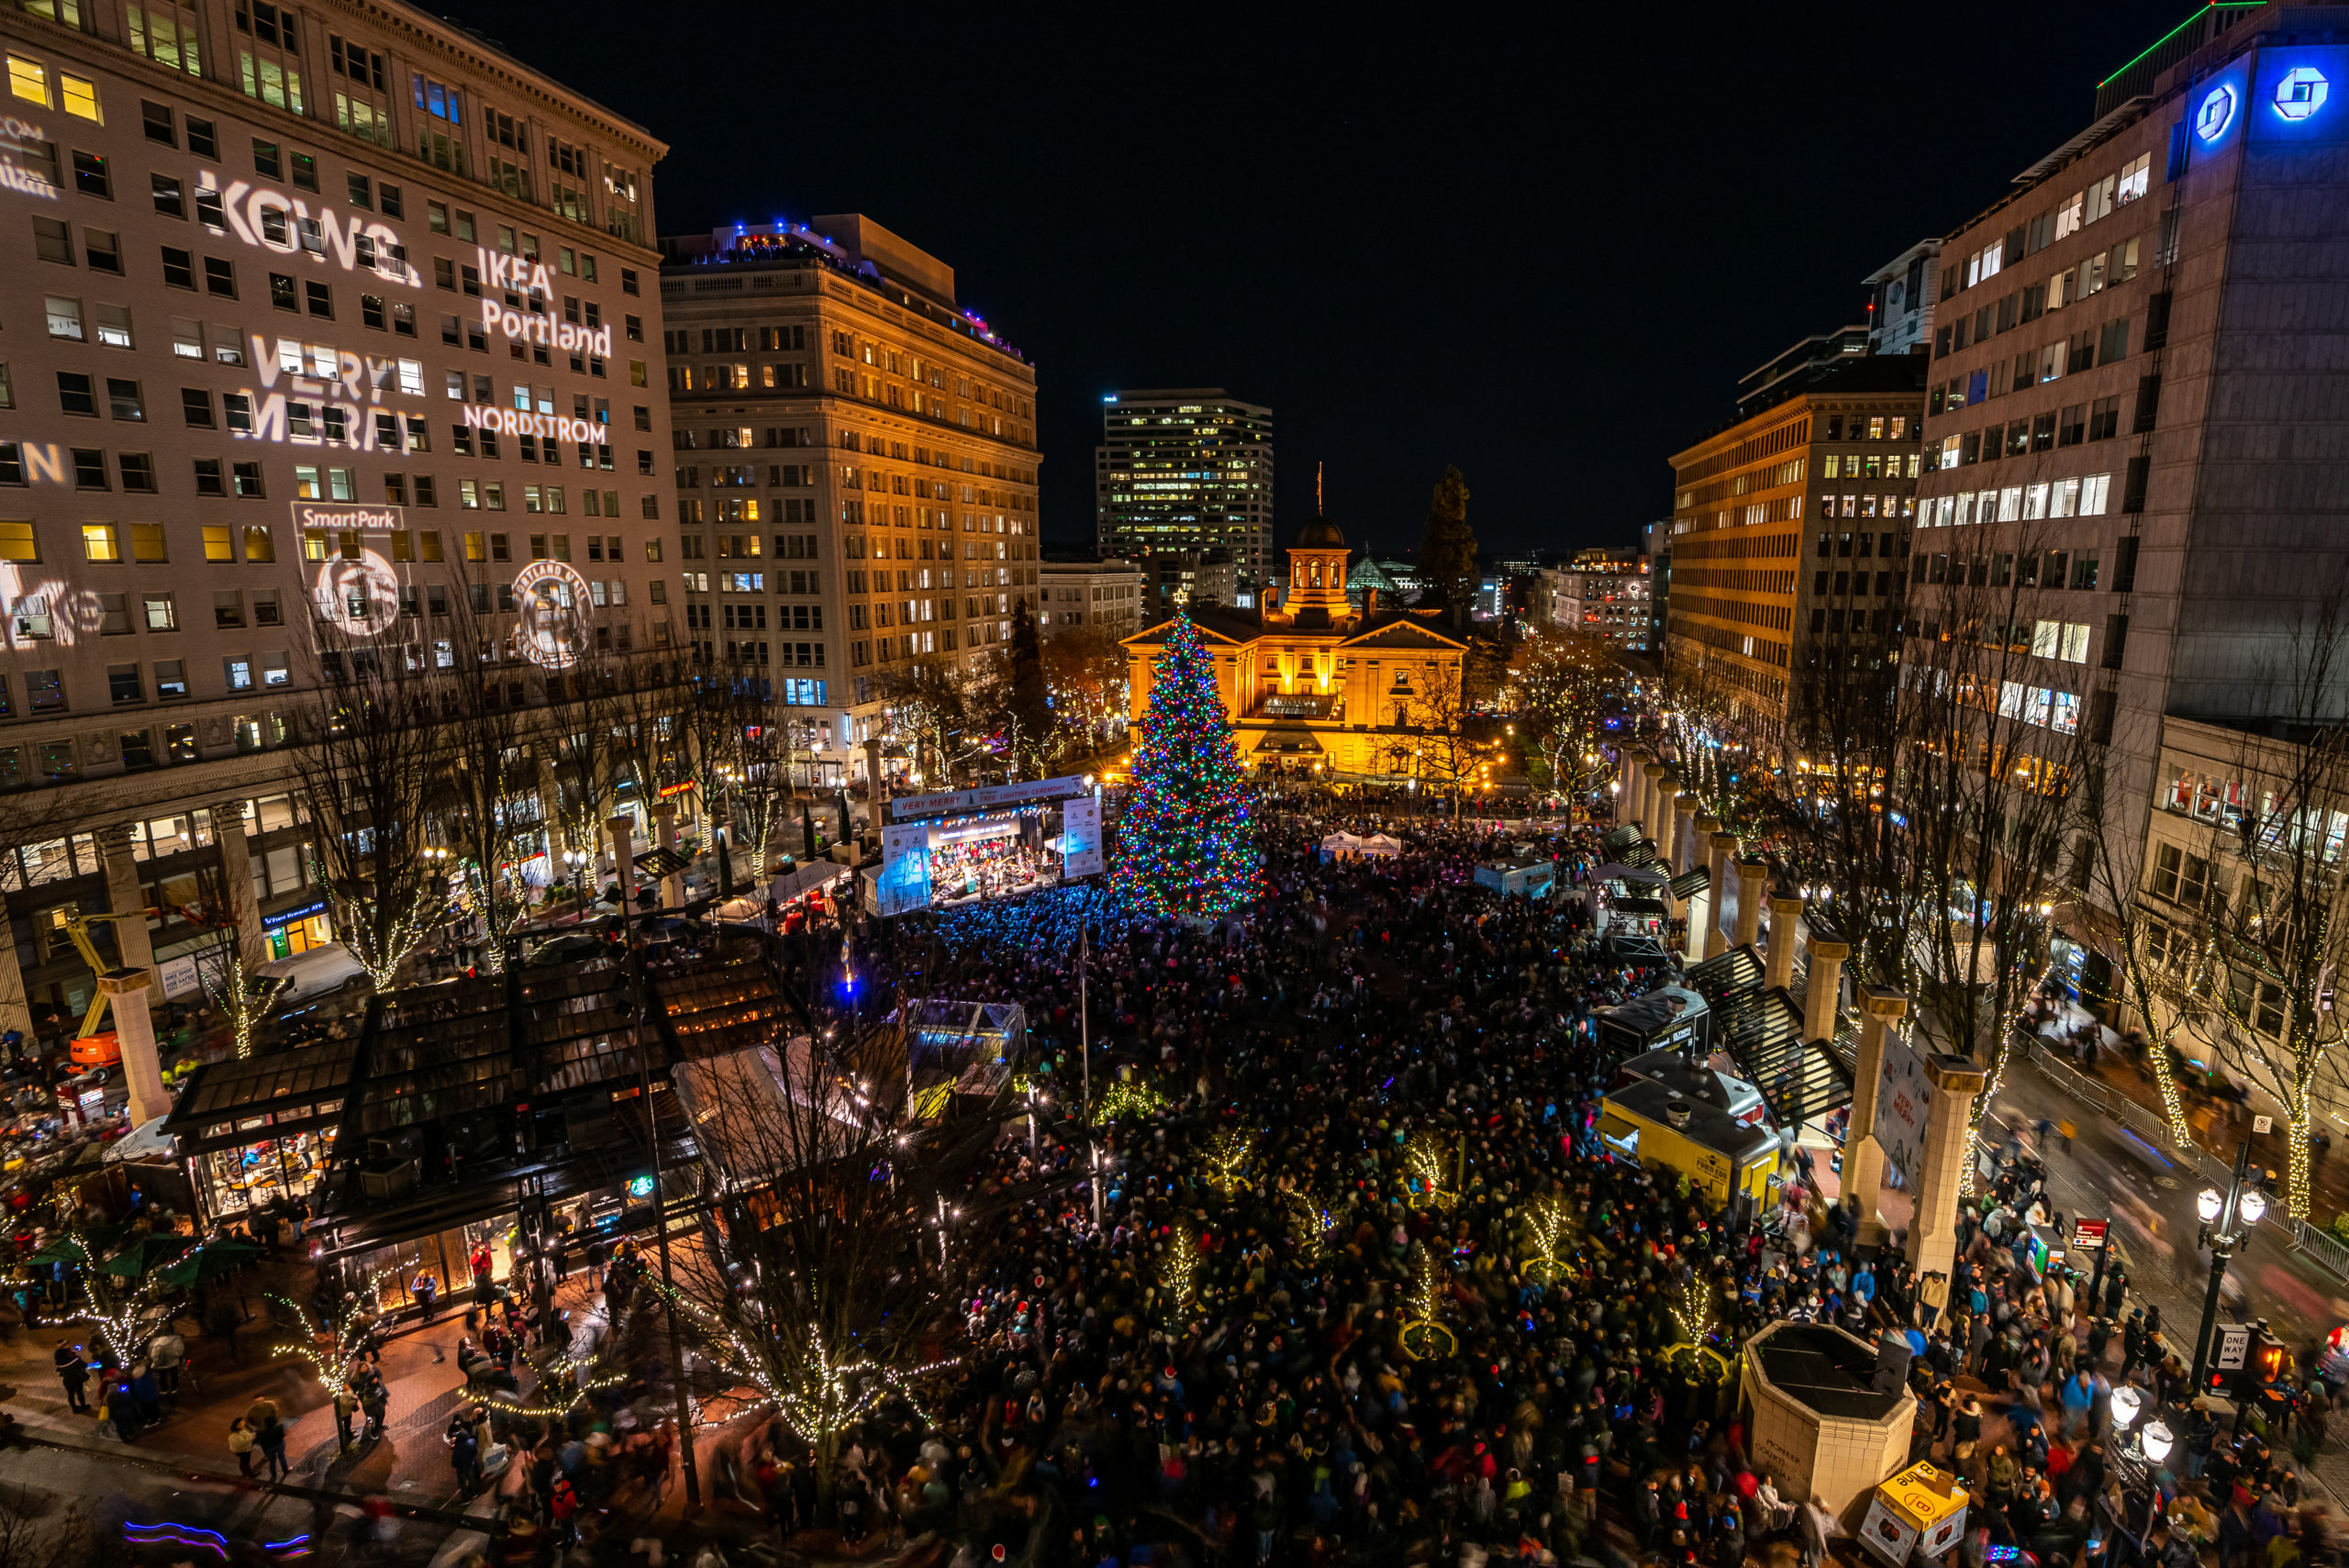 20,000 Community Members Celebrate the 35th Annual Tree Lighting Ceremony!